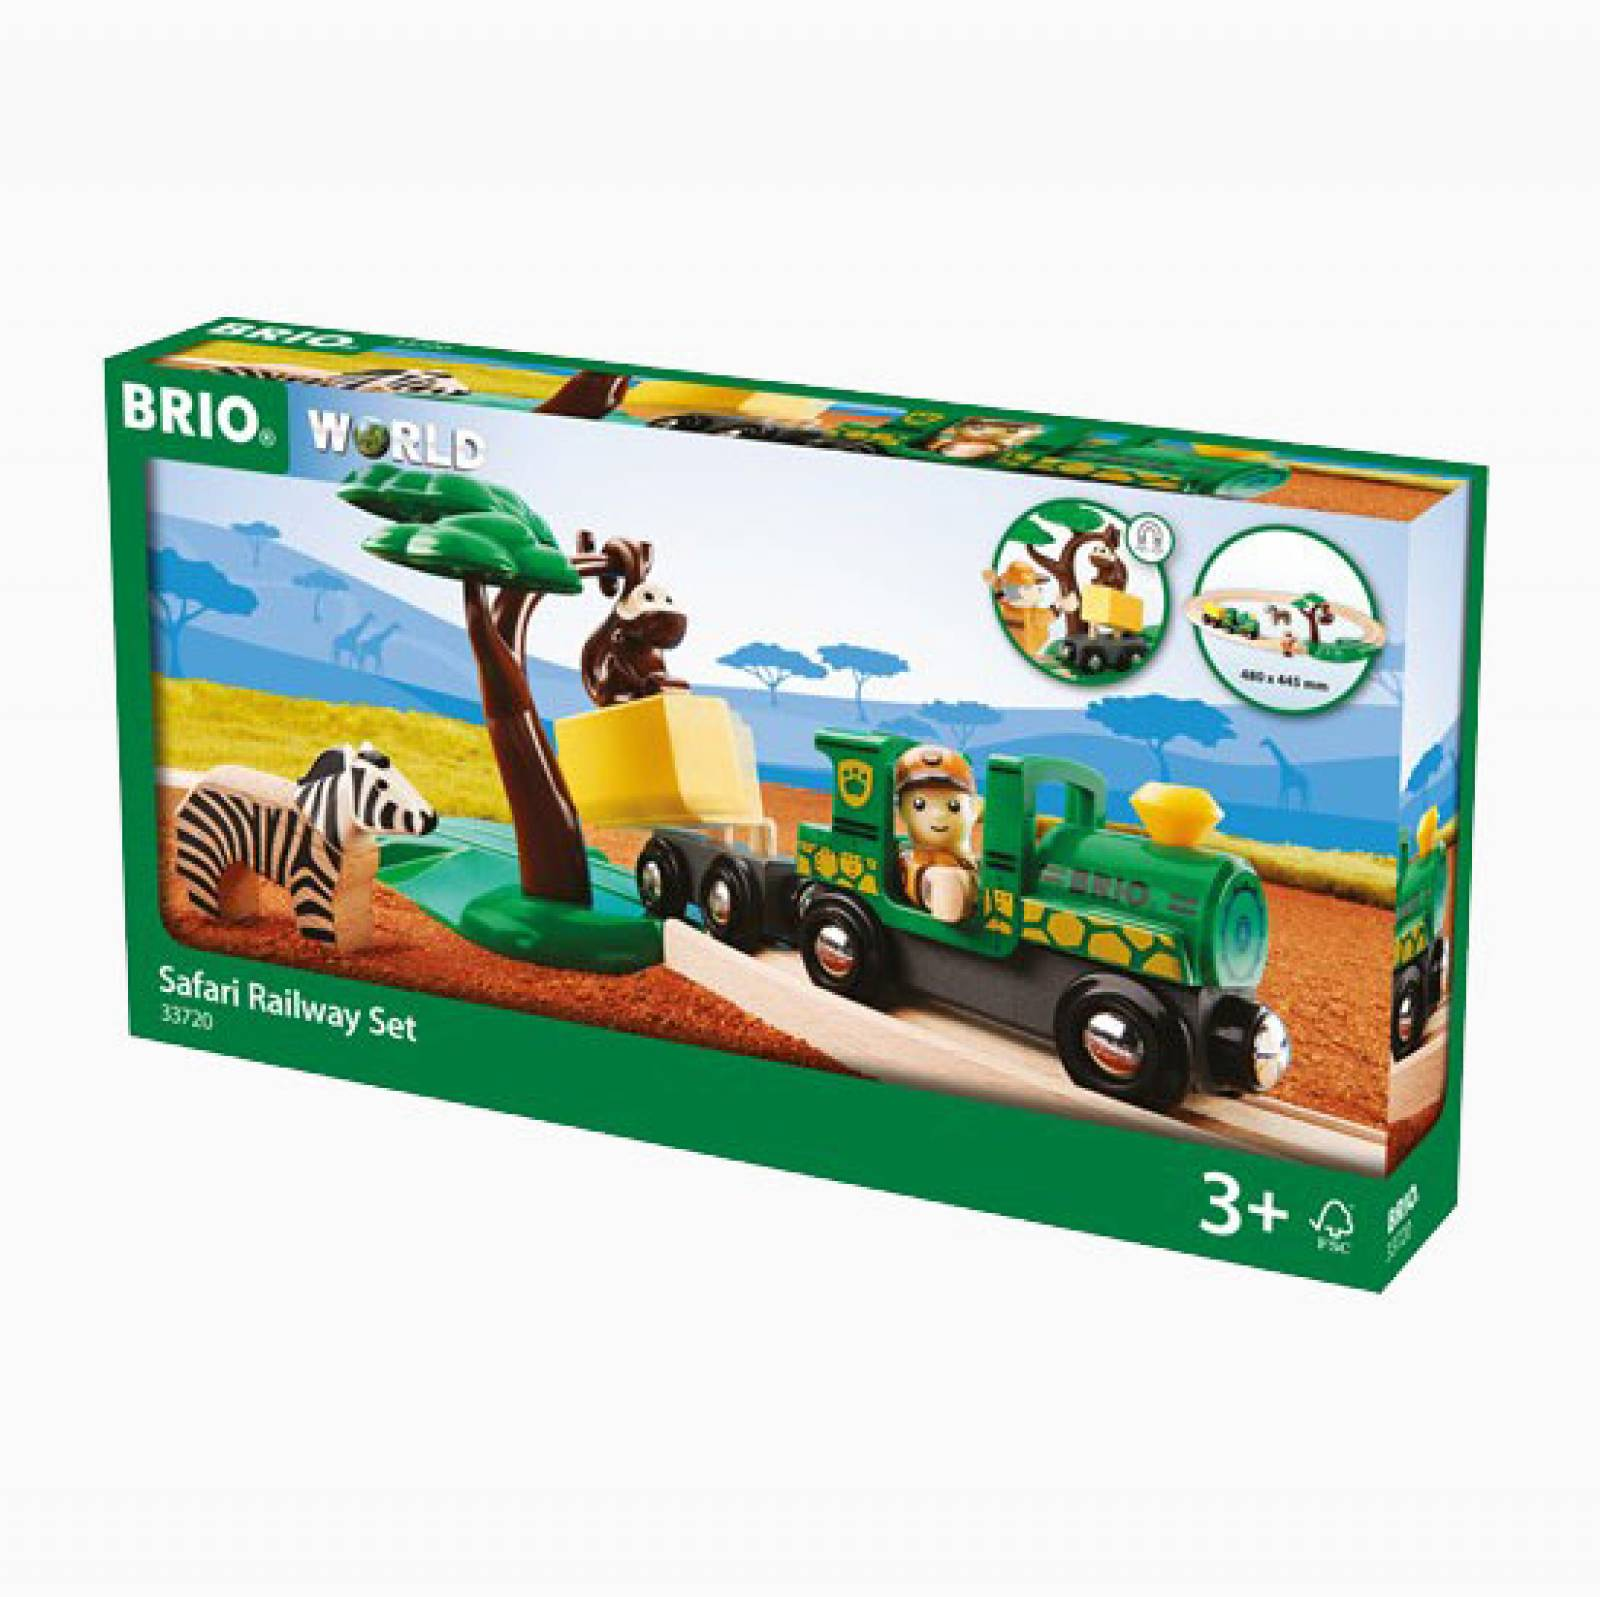 Safari Railway Set BRIO Wooden Railway Age 3+ thumbnails